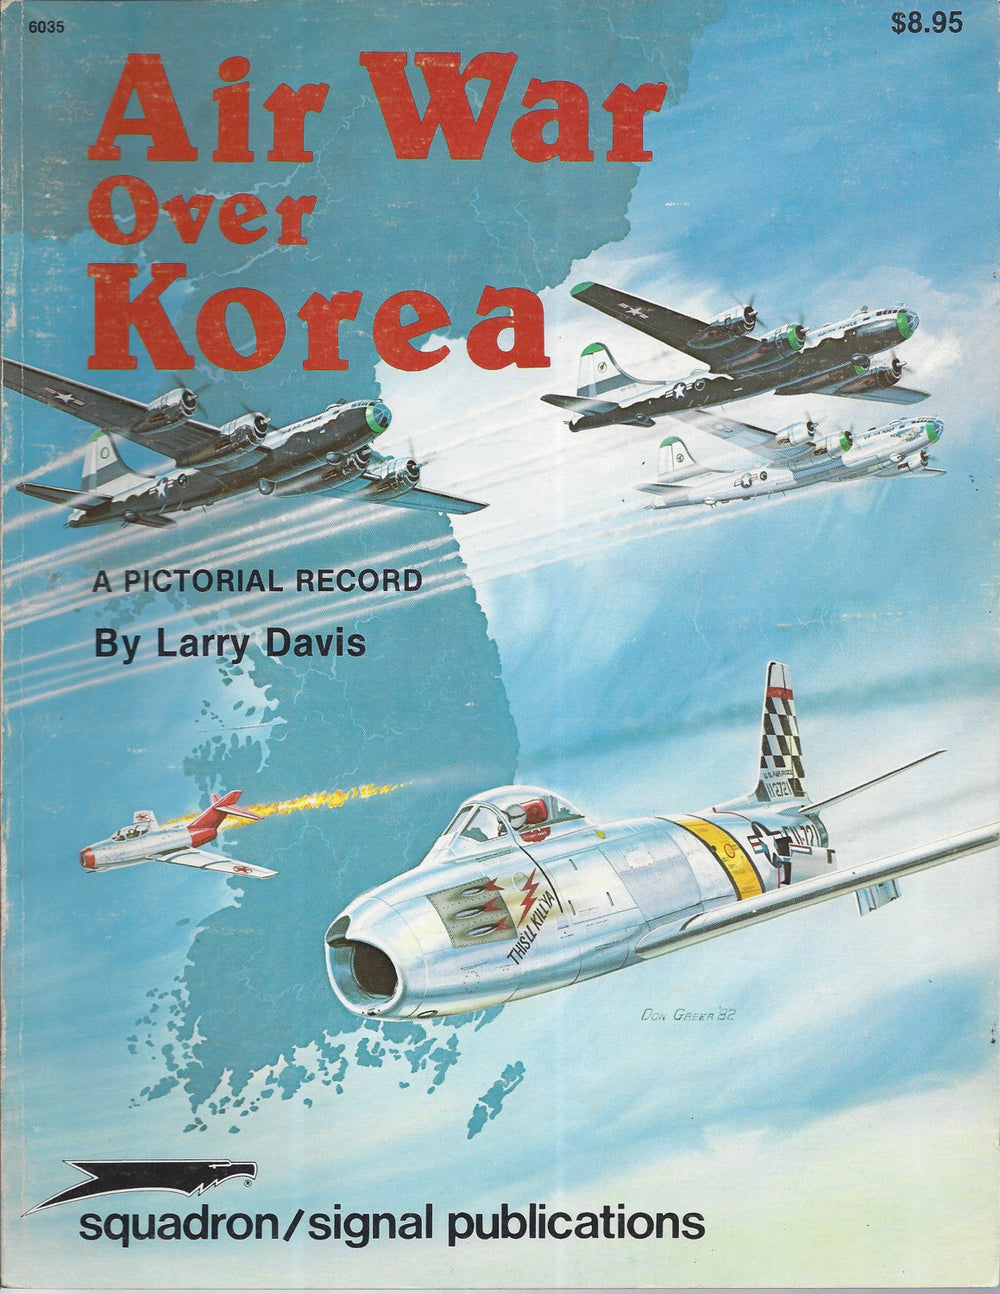 Air War Over Korea: A Pictorial Record - Aircraft Specials series (6035) (Paperback) by Larry Davis